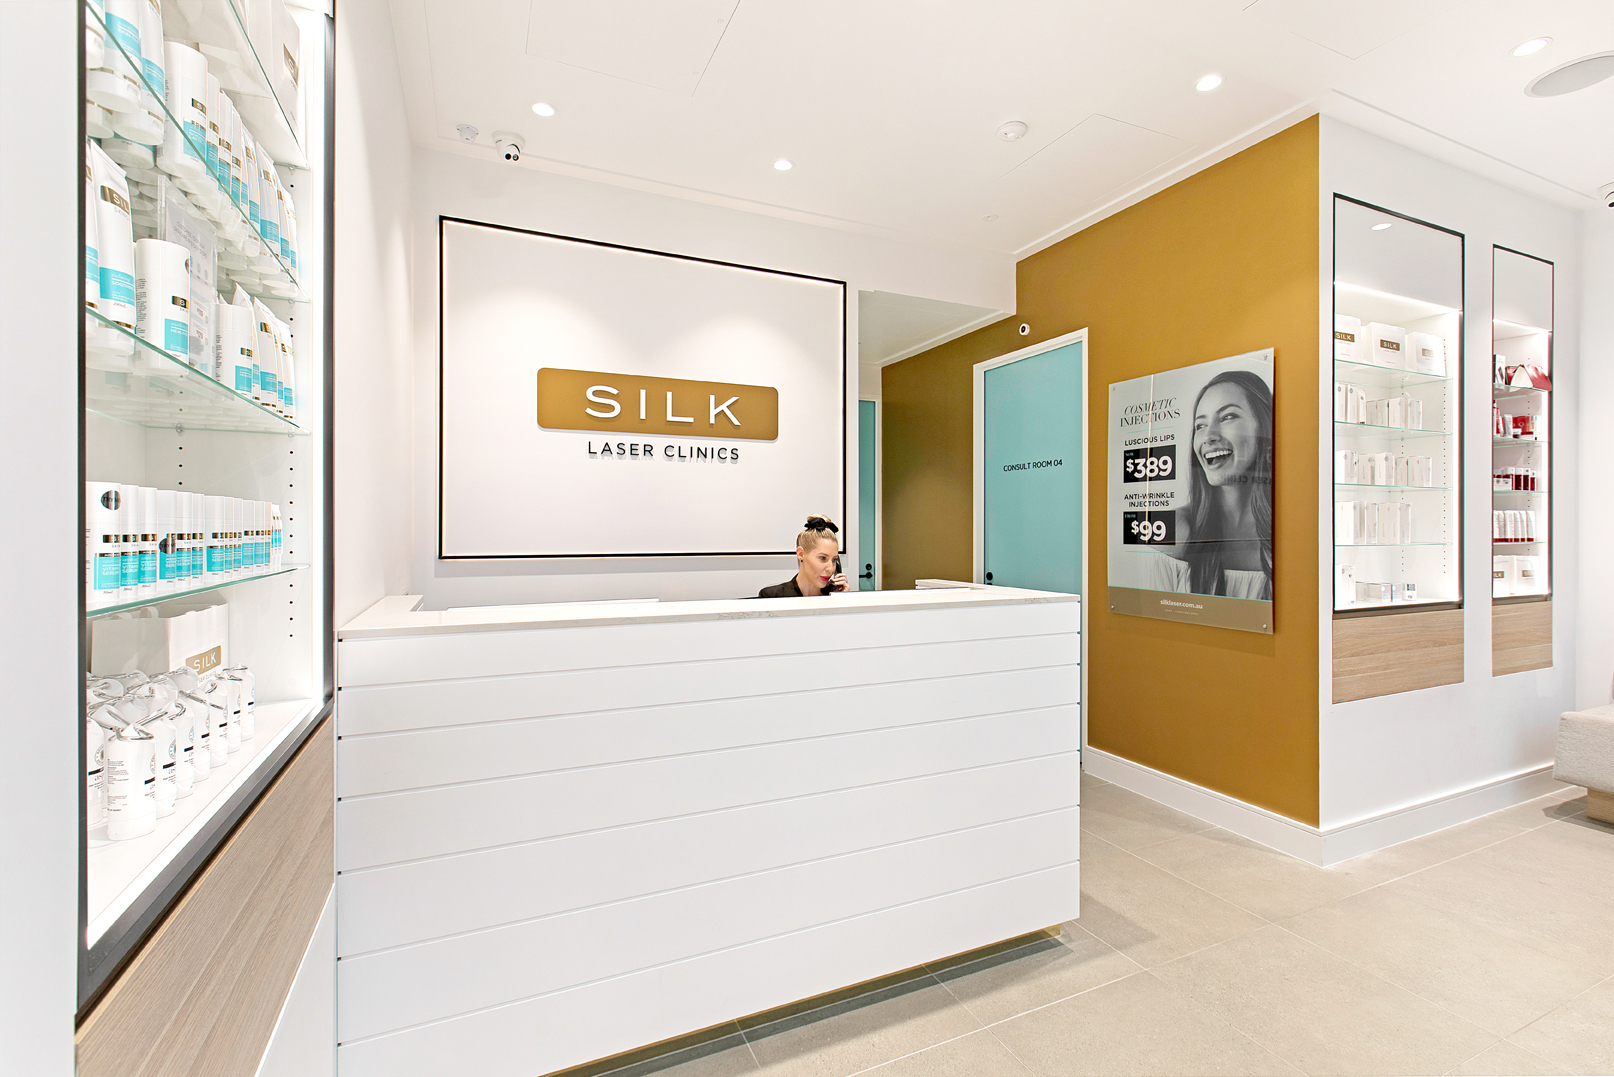 Silk Laser Clinic commercial marketing photography in the Whitsundays by Brooke Miles